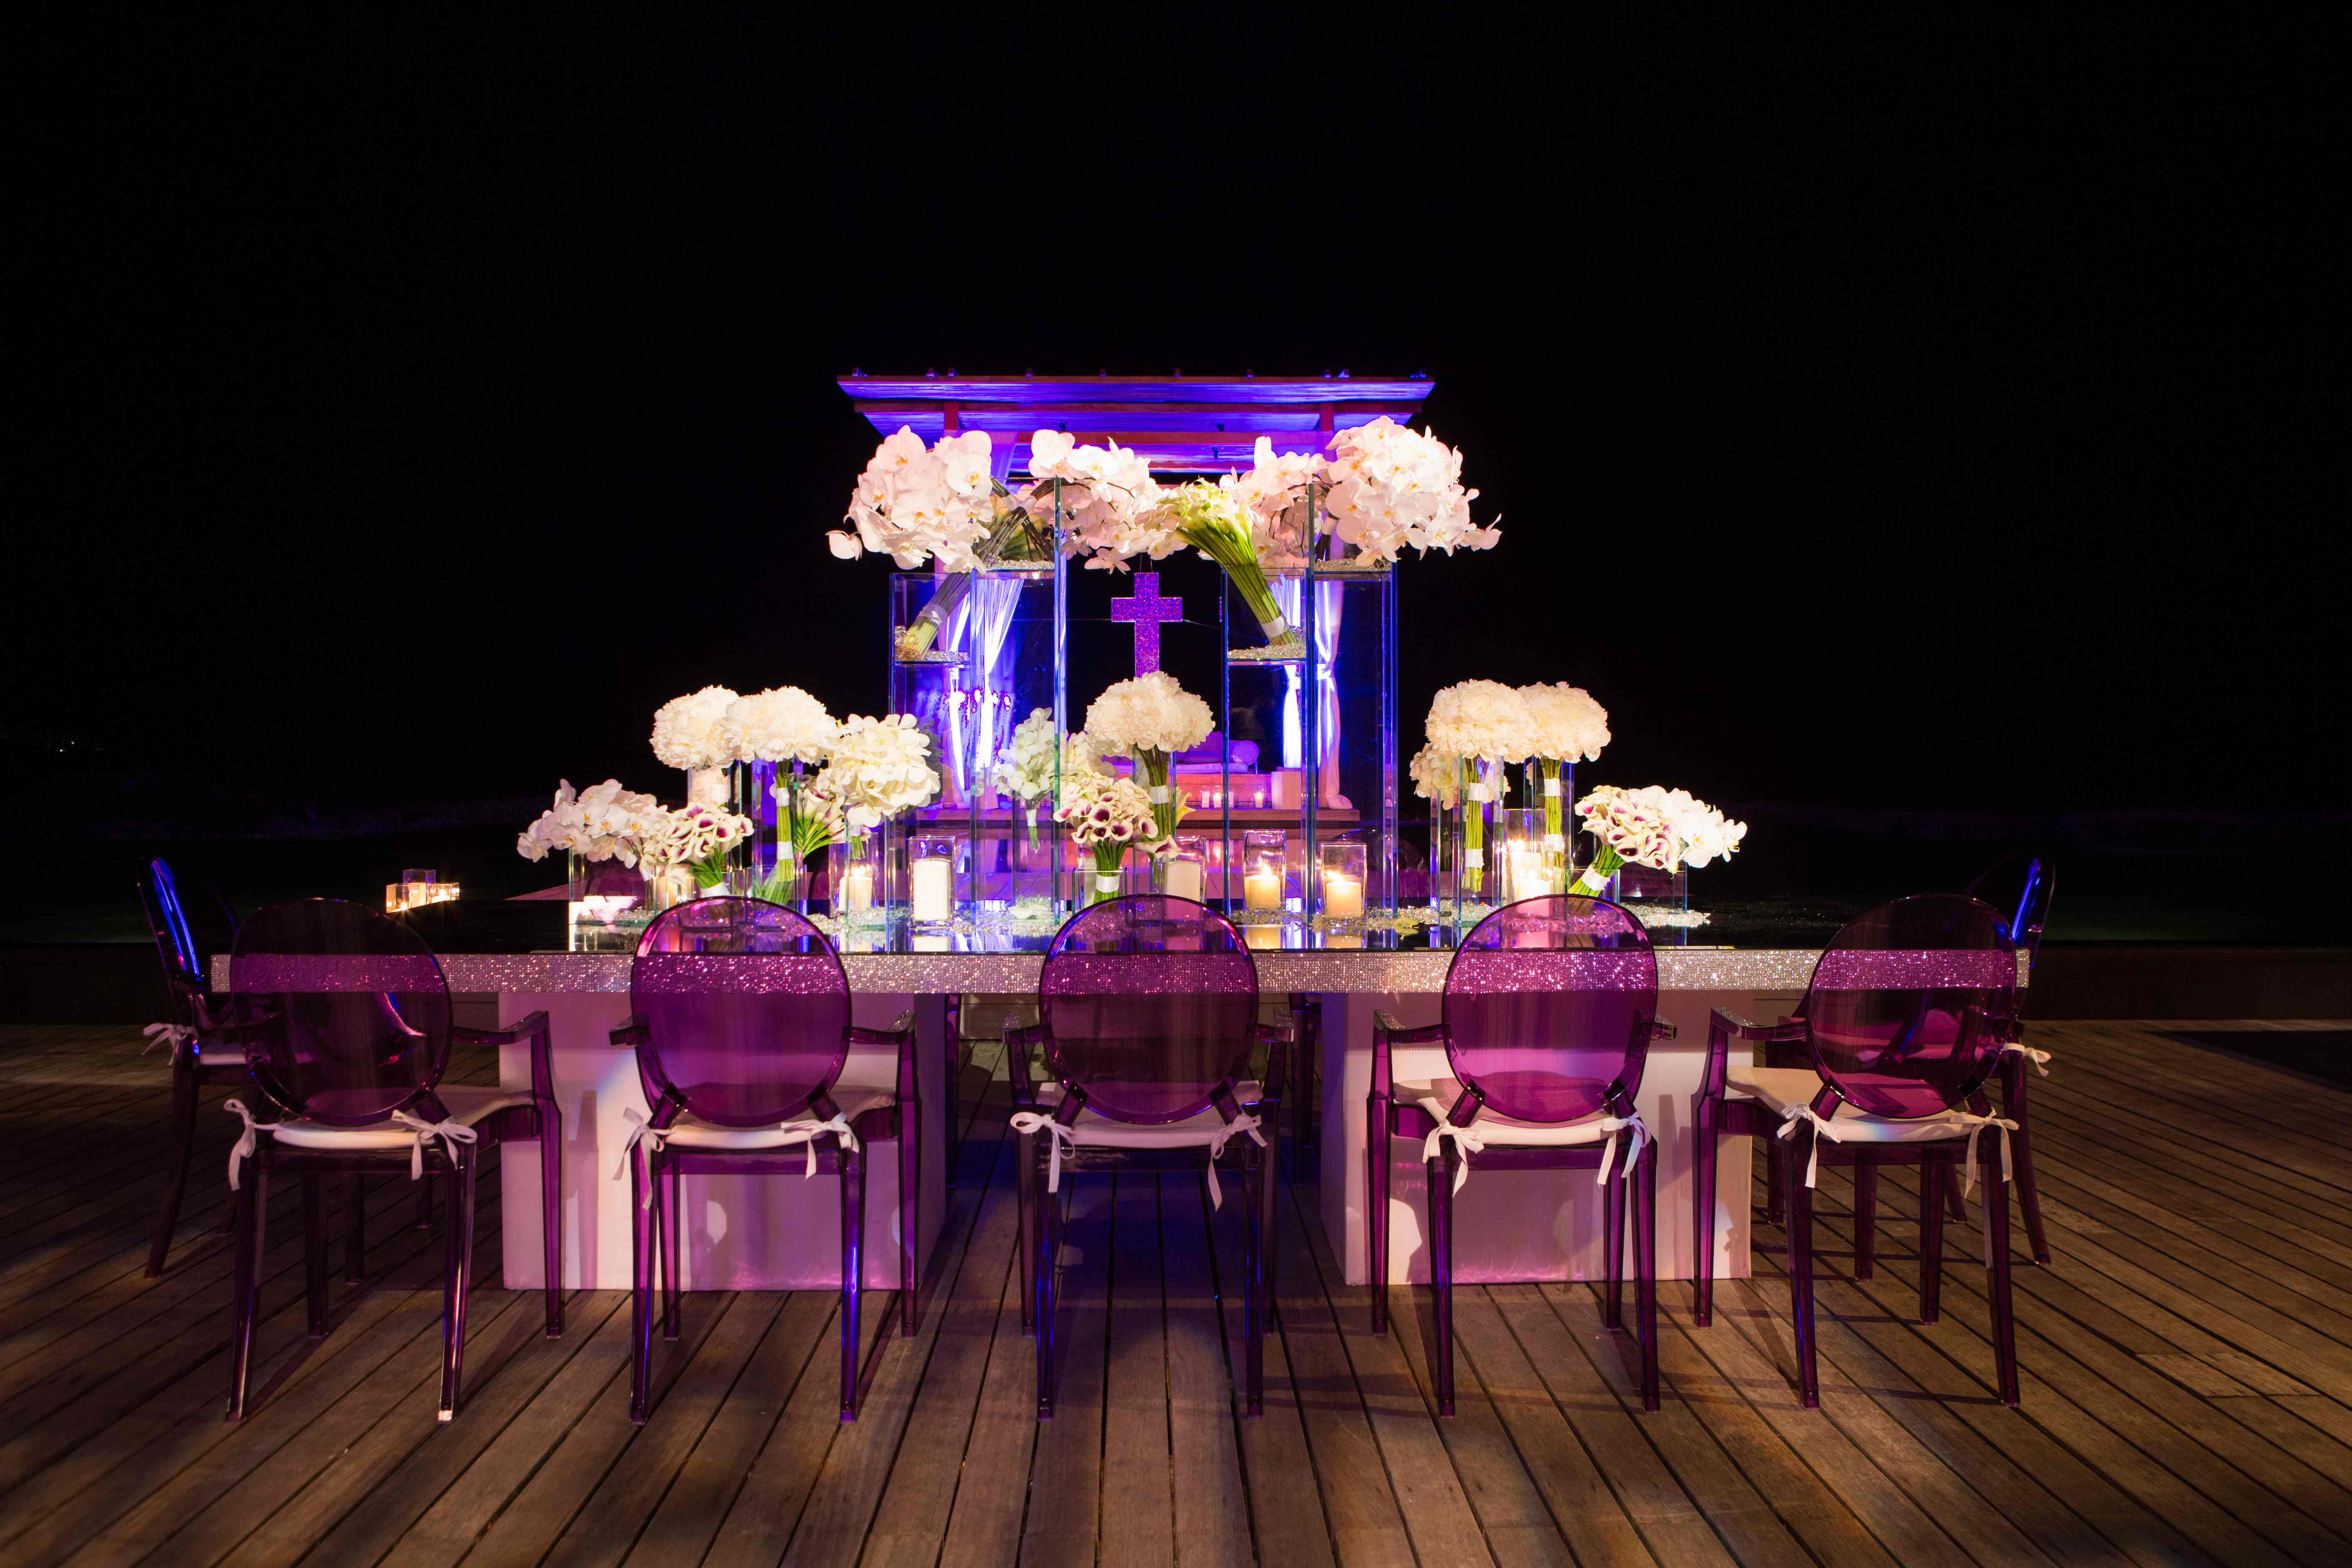 Destination wedding with purple Ghost chairs